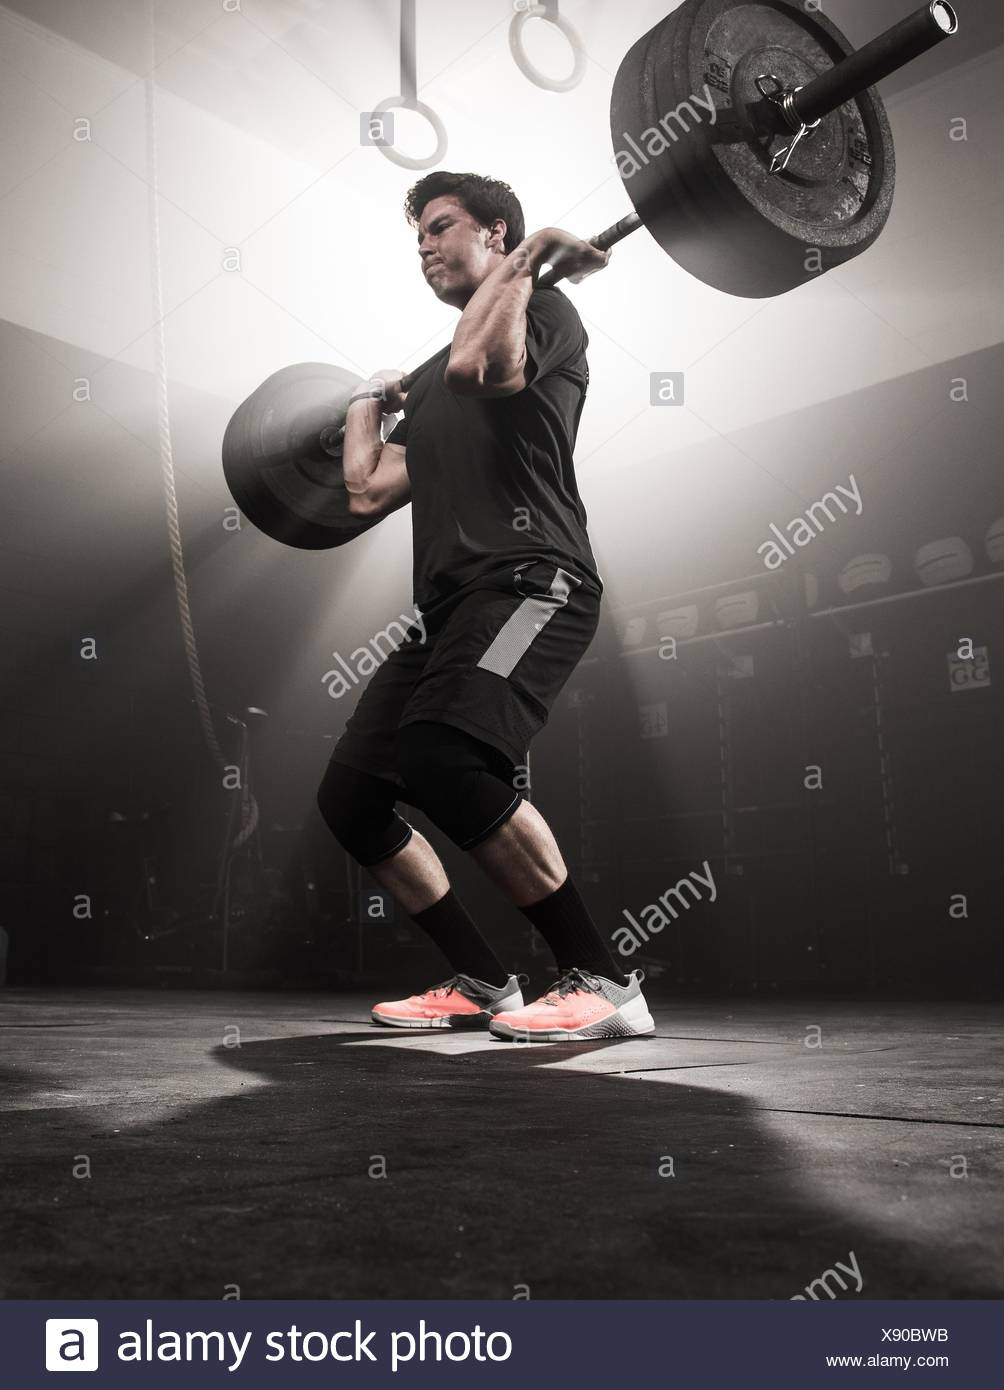 Young man lifting barbell - Stock Image